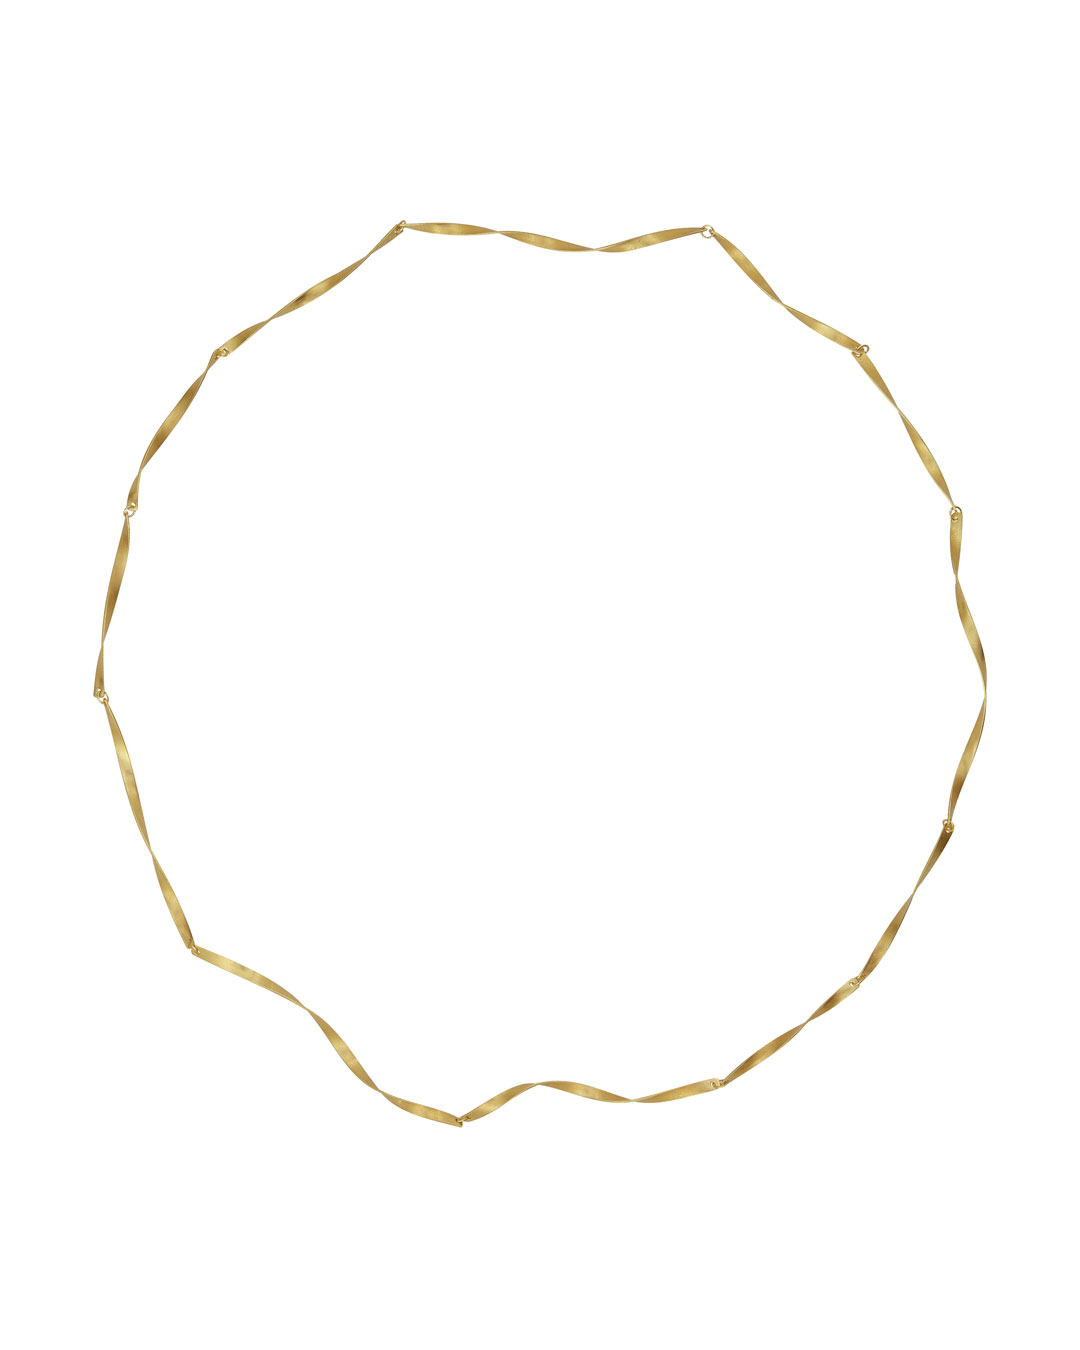 Annelies Planteijdt, Mooie stad - Wervelend water (Beautiful City - Swirling Water), 2020, necklace; 18ct gold, 640 mm, €2950